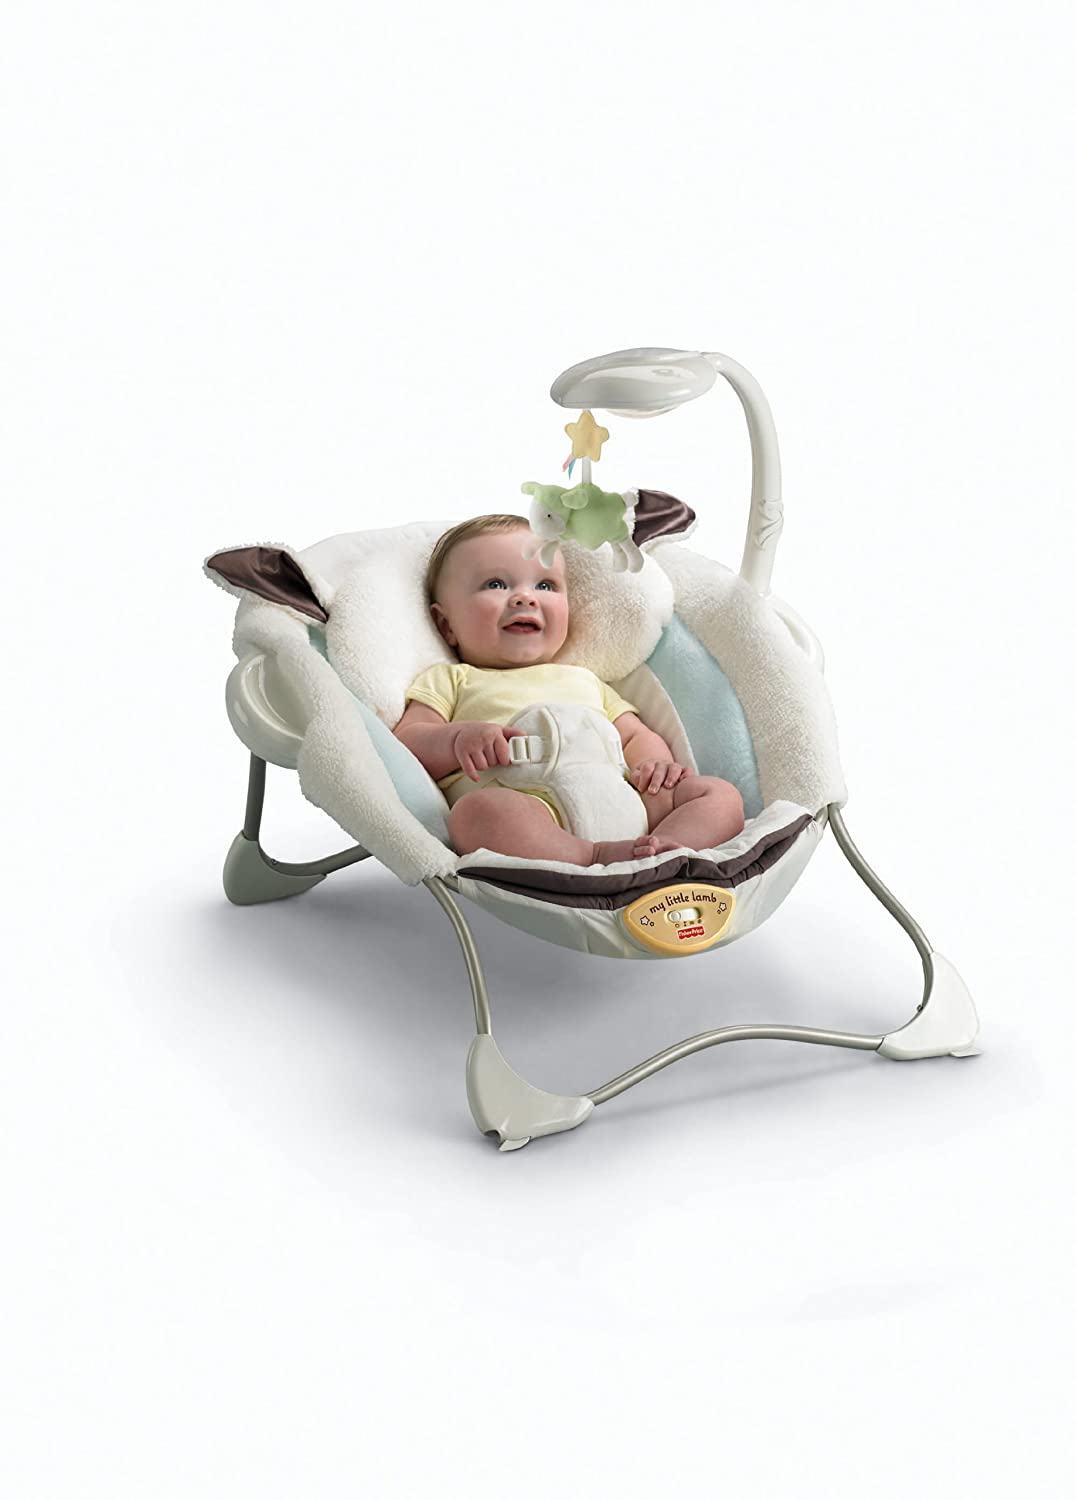 Baby Bouncer Chair For Sale 50 Baby Bouncer Chairs